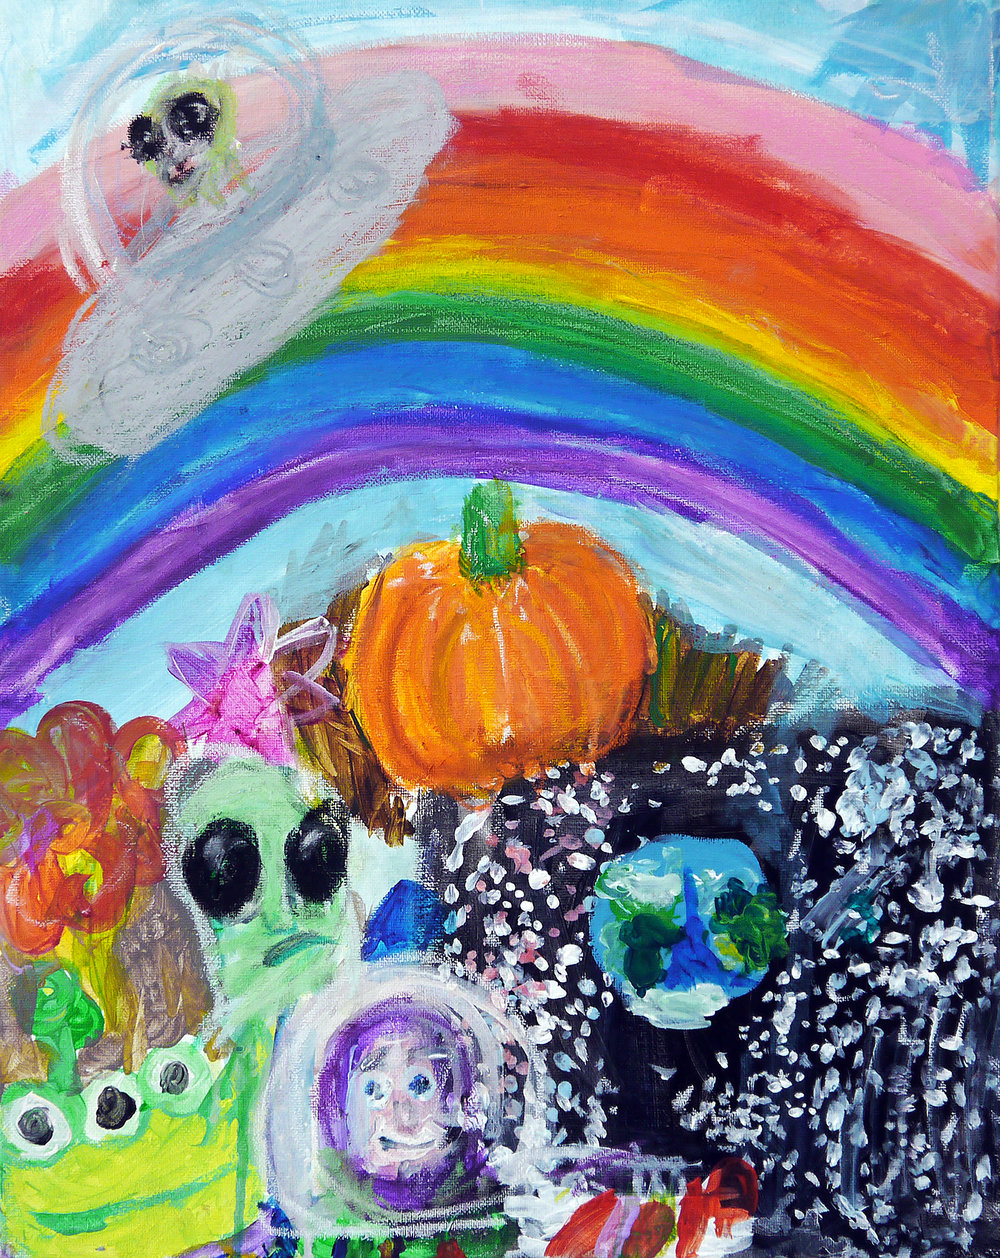 (SOLD) Alien, Pumpkin, Buzz Lightyear, Earth, Rainbow, Flower, Star - acrylic on canvas - 2017.jpg